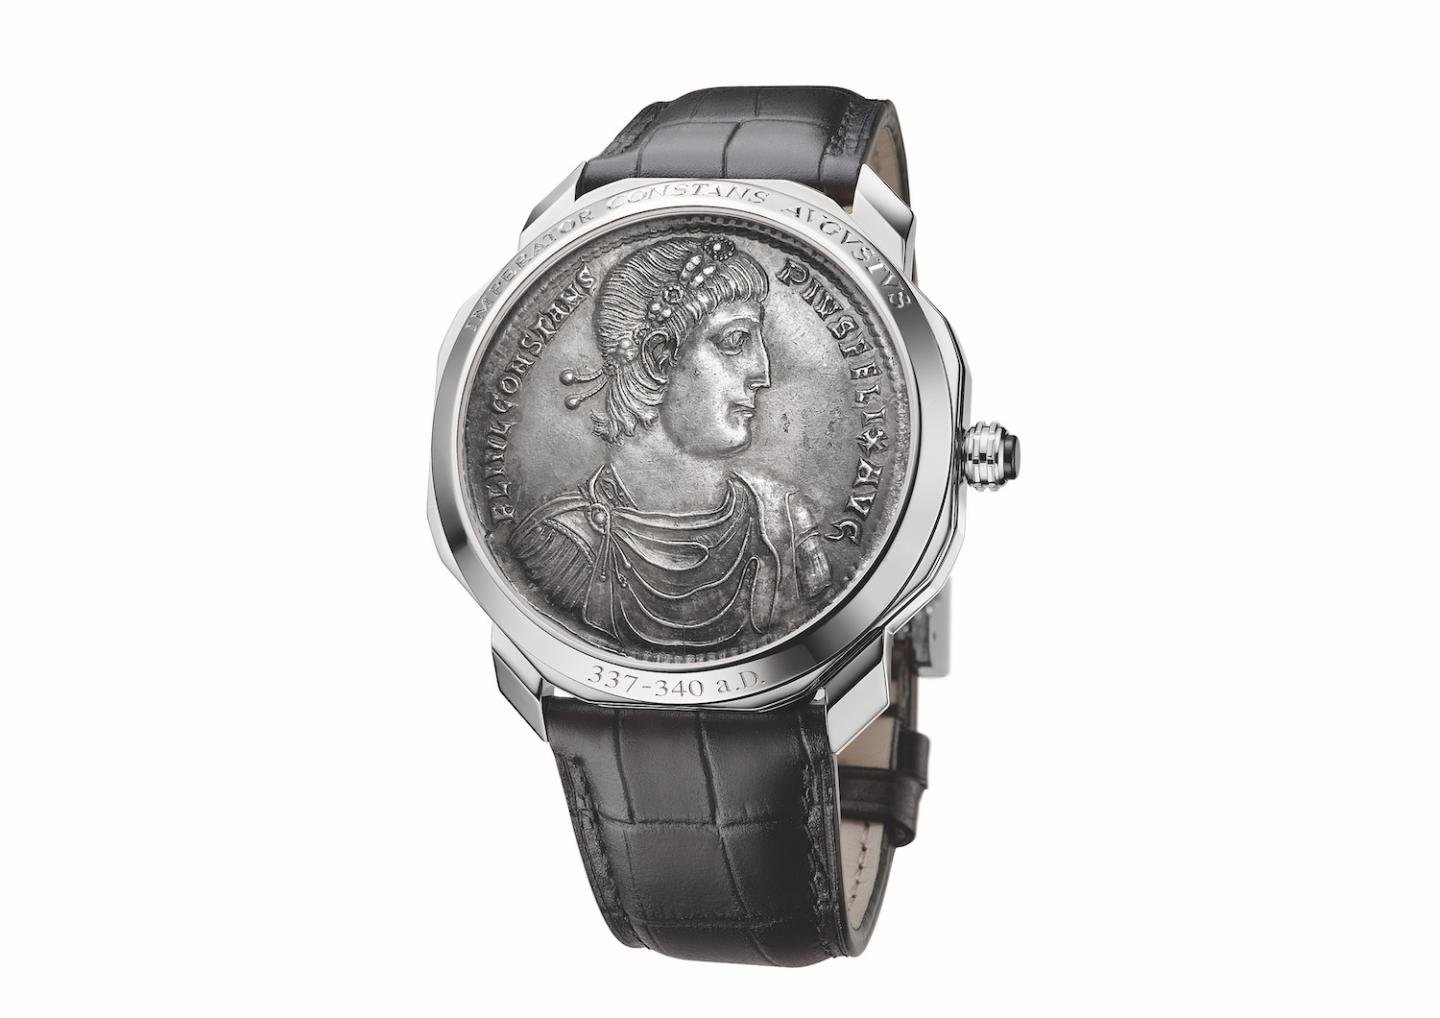 Another Octo Roma Monete, in platinum, features a different coin that also depicts the Emperor Constans.